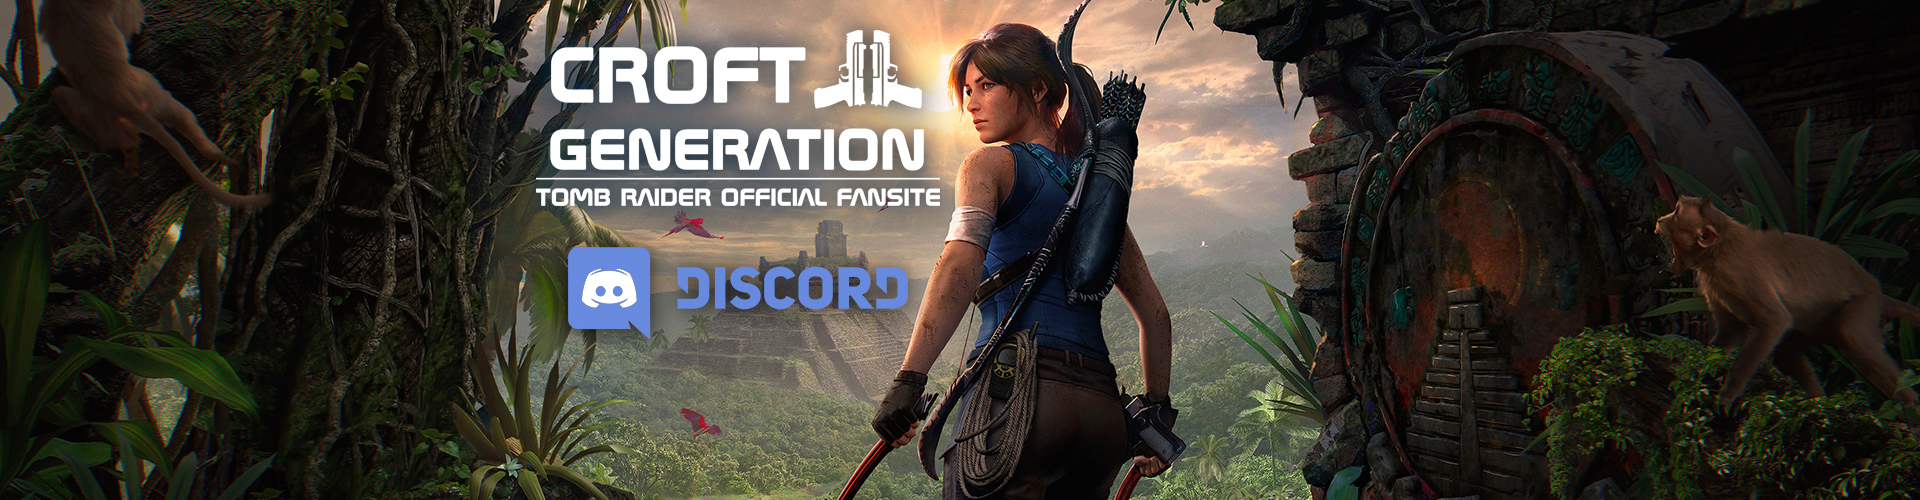 Discord Community for the Croft Generation